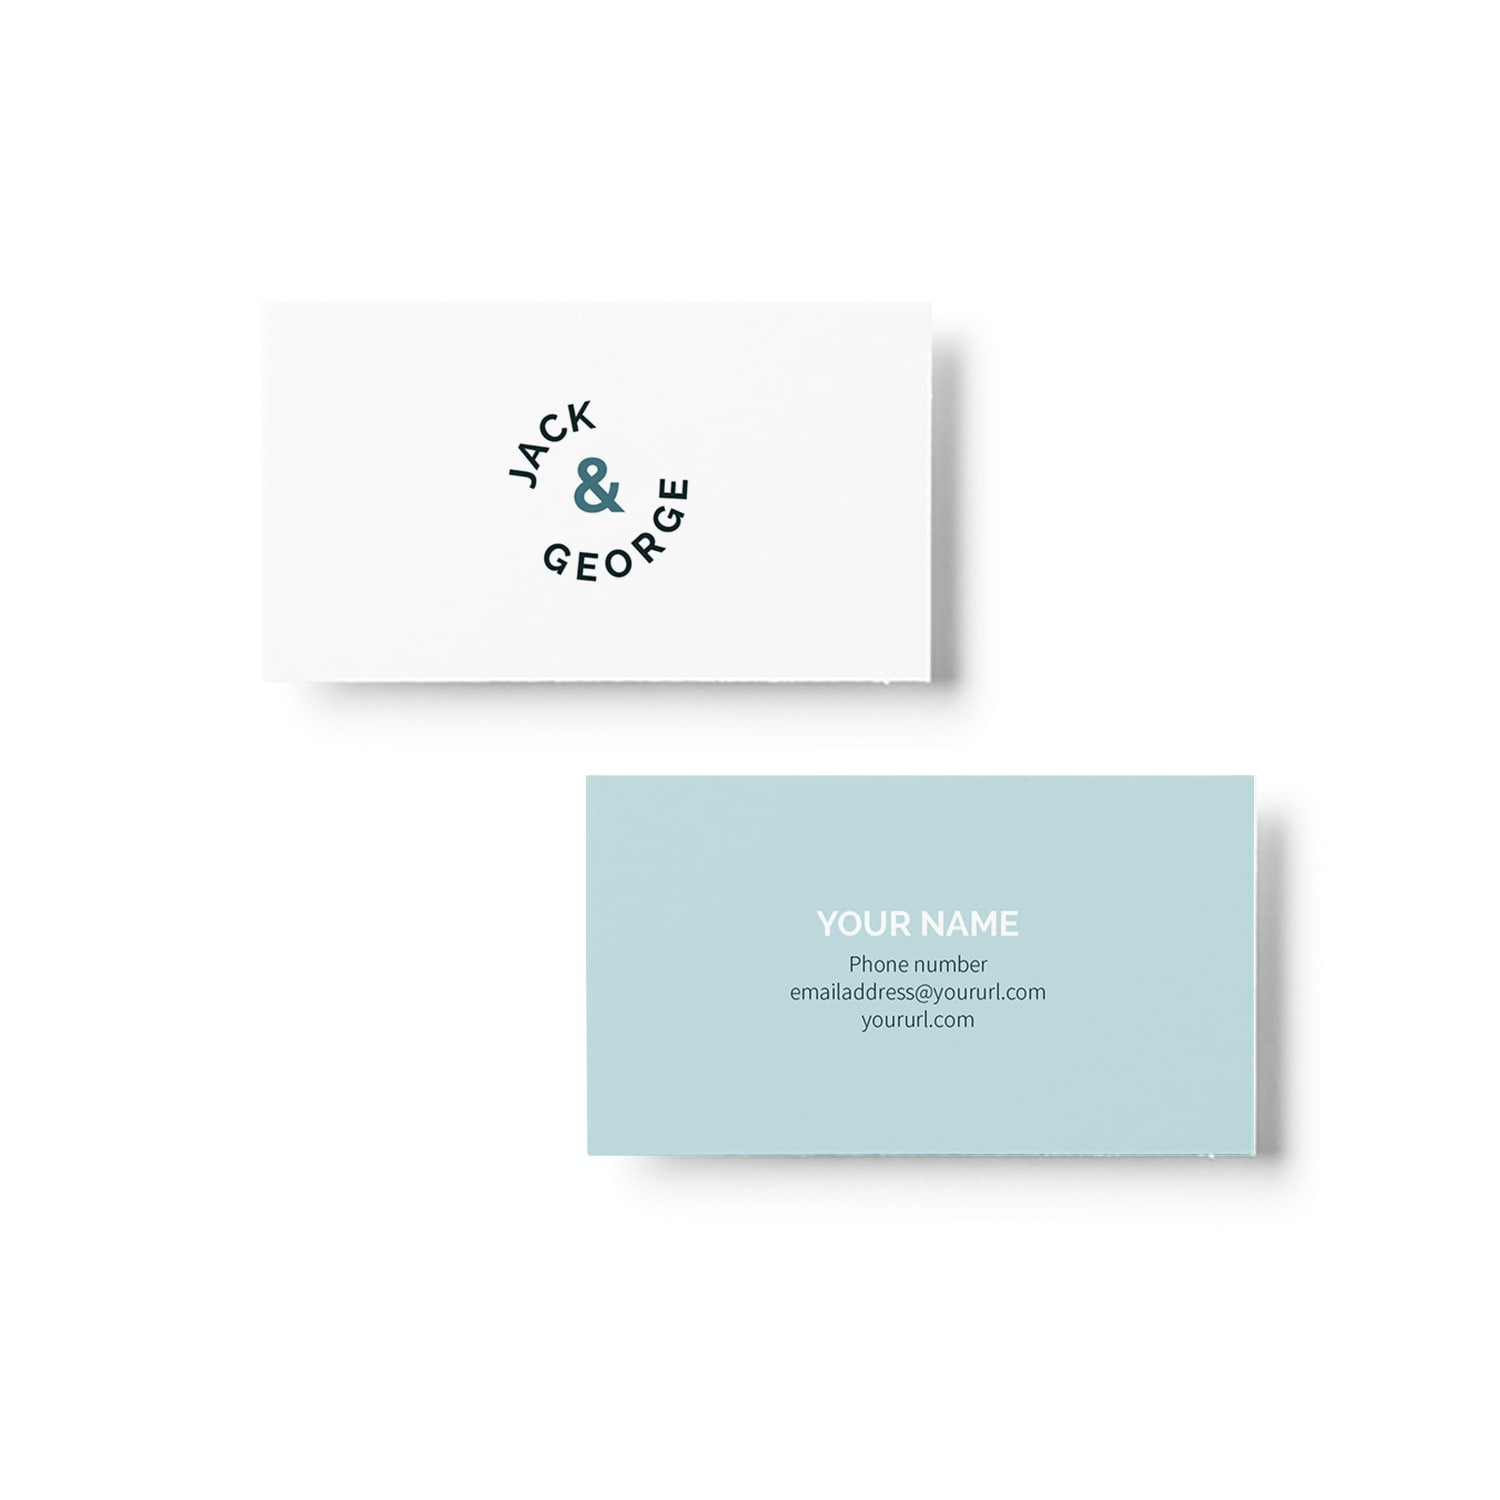 Jack & George Business Card Design_Copyright Tiny Crowd